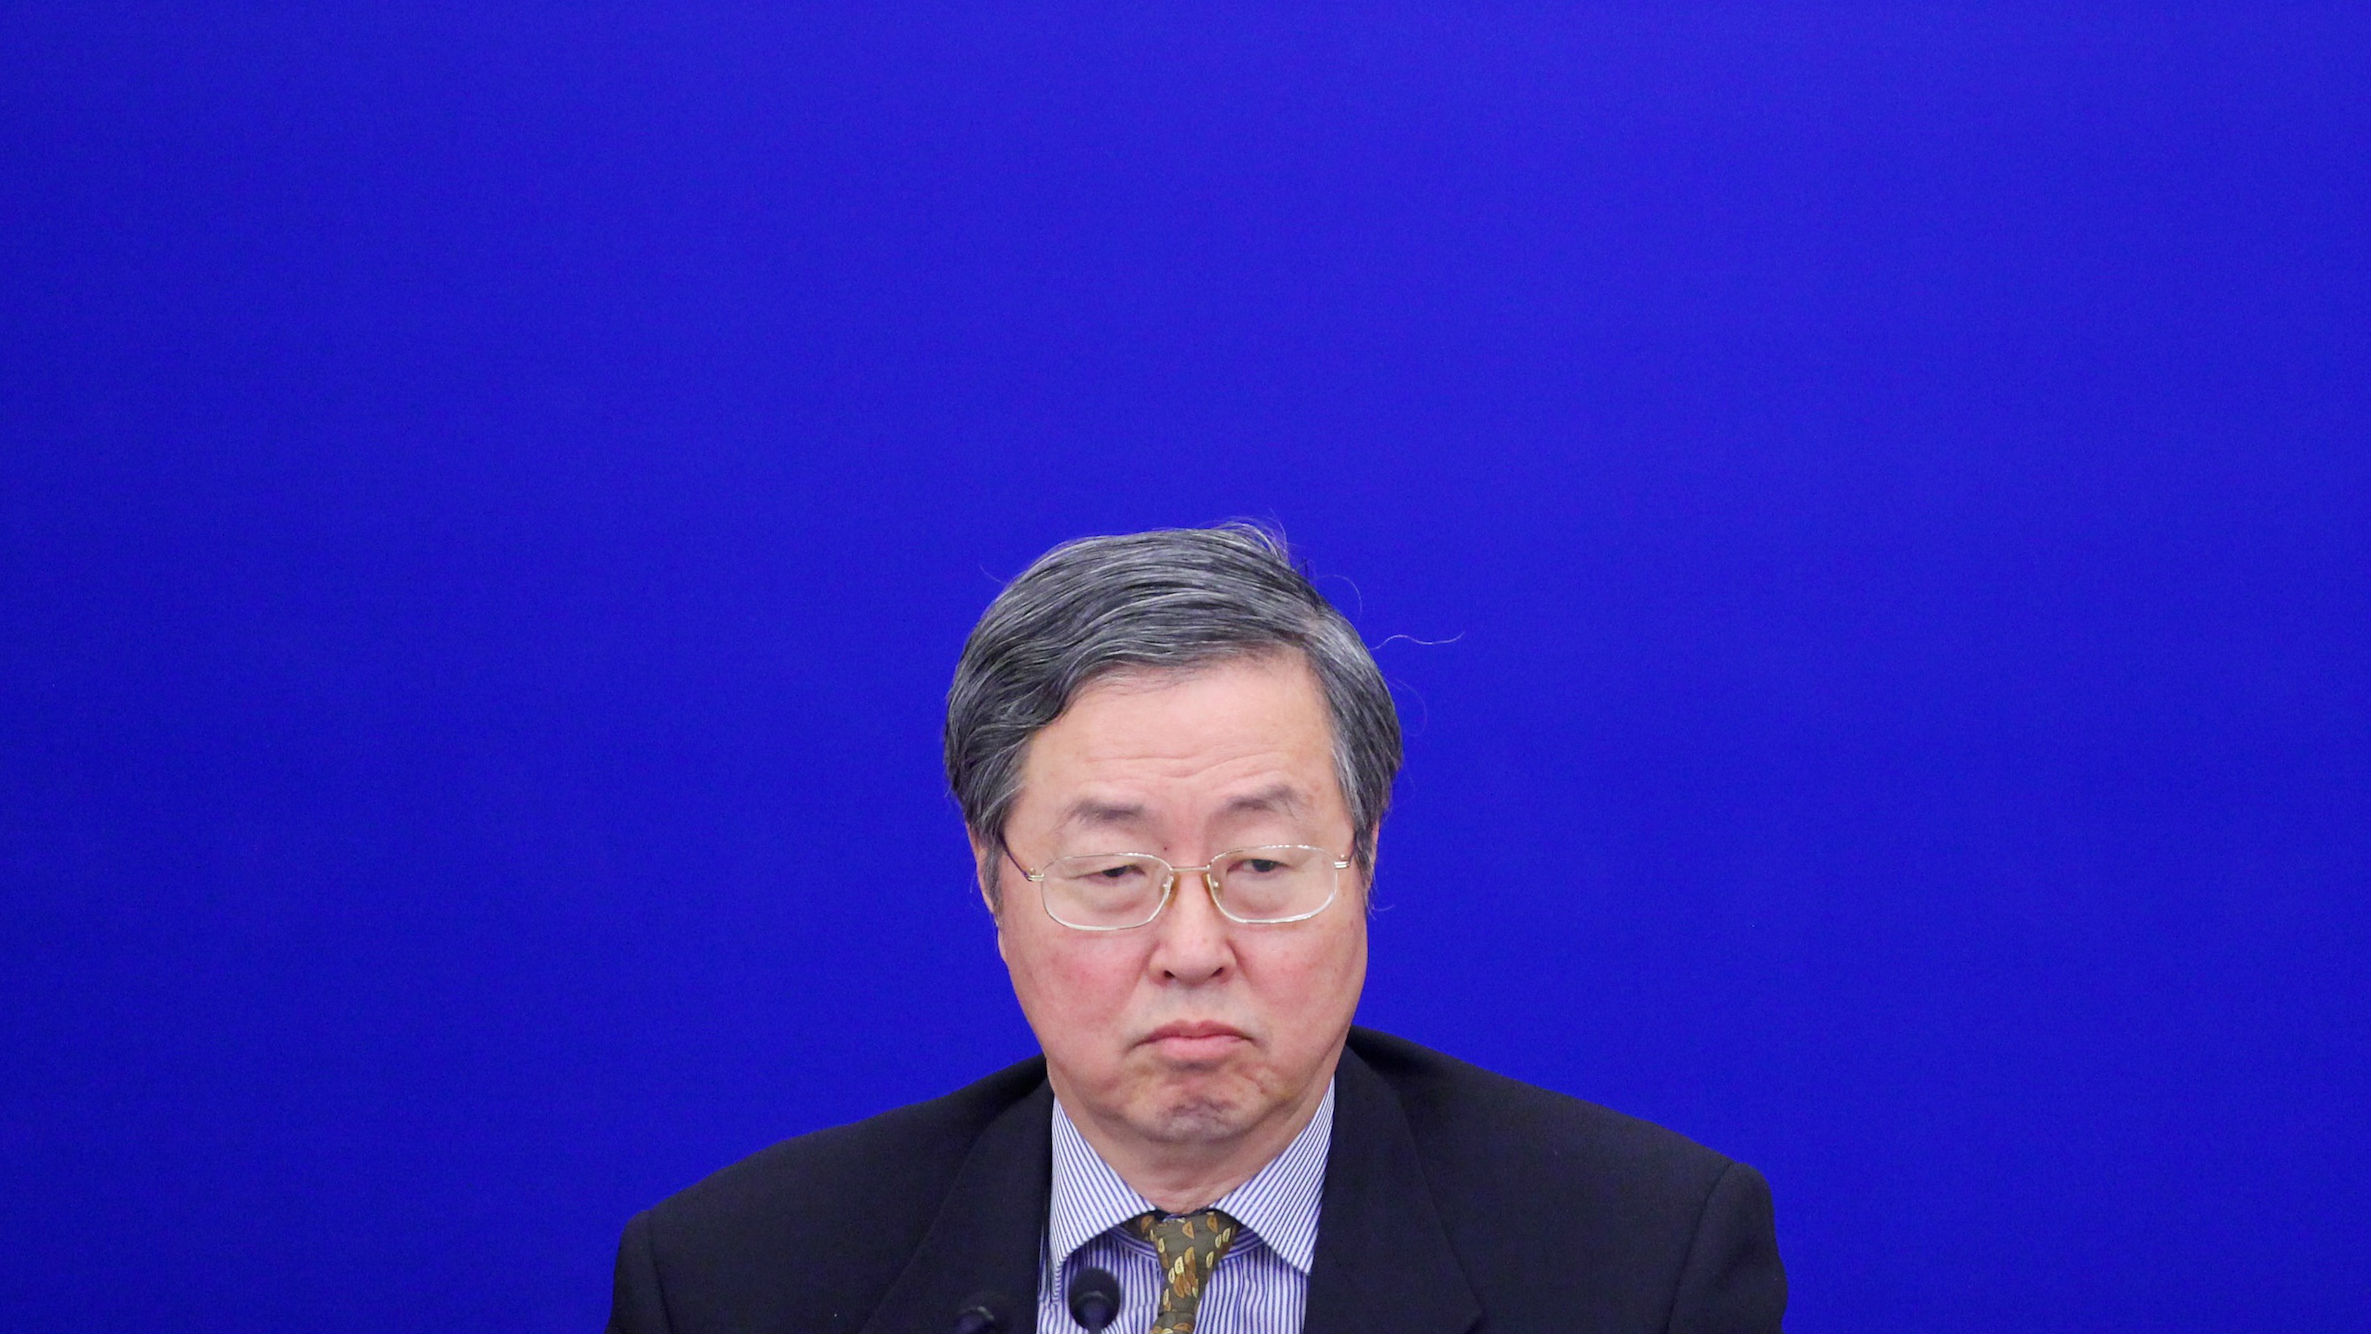 Head of the People's Bank of China Zhou Xiaochuan is likely stepping down next month.